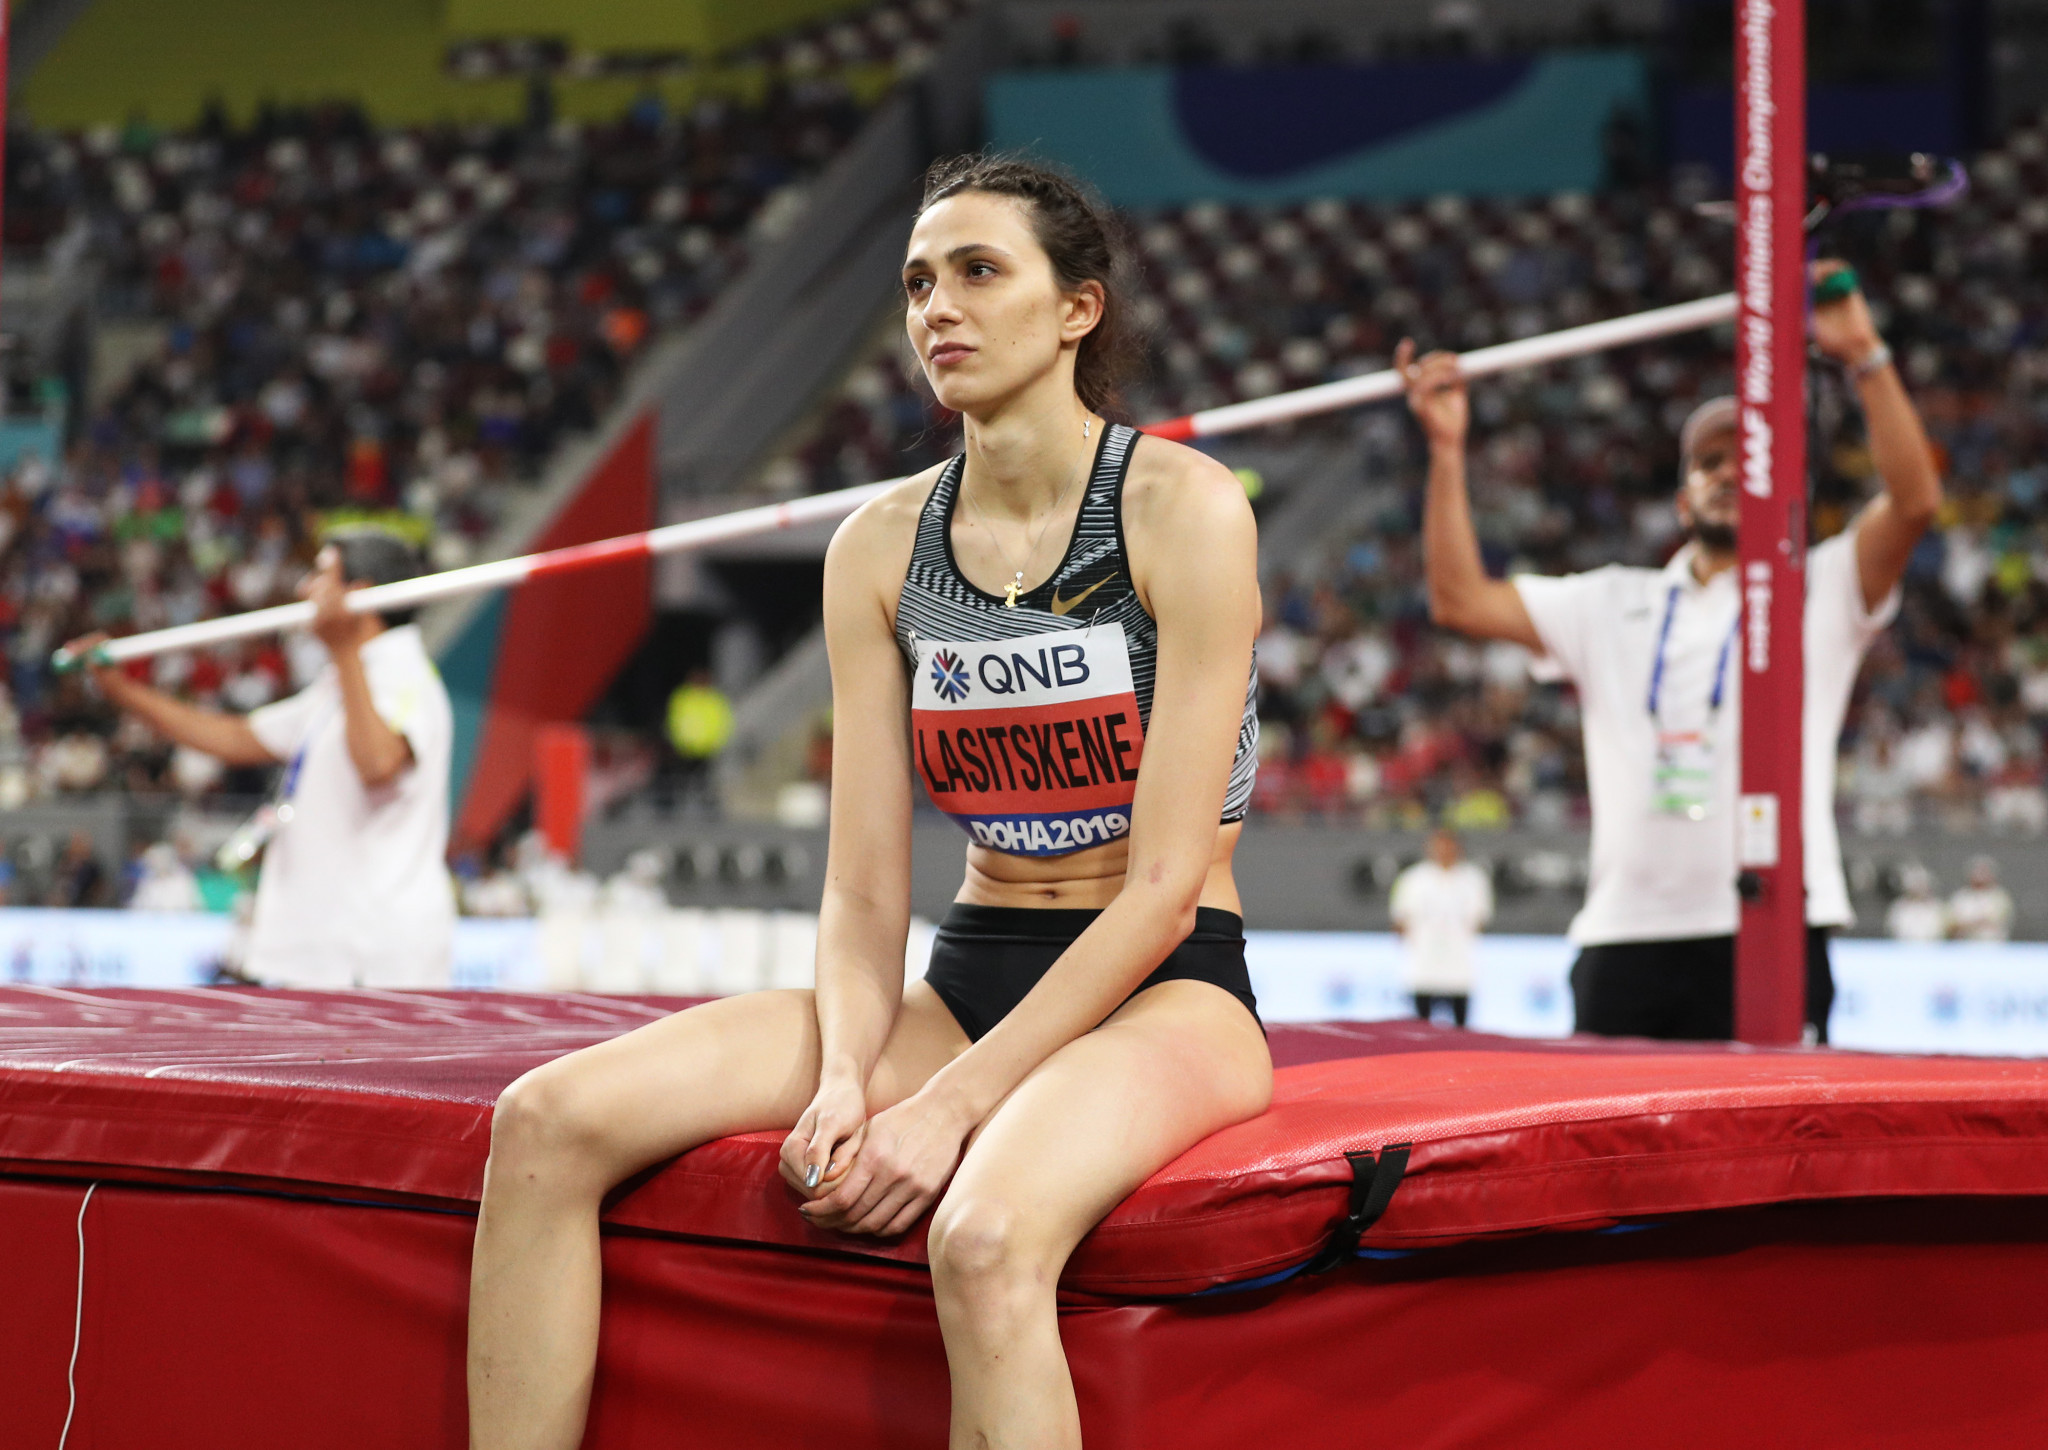 Russia's three-times world high jump champion Mariya Lasitskene has tweeted her support for fellow athlete Sergey Shubenkov amidst allegations that he has produced an adverse test that he has strongly denied ©Getty Images